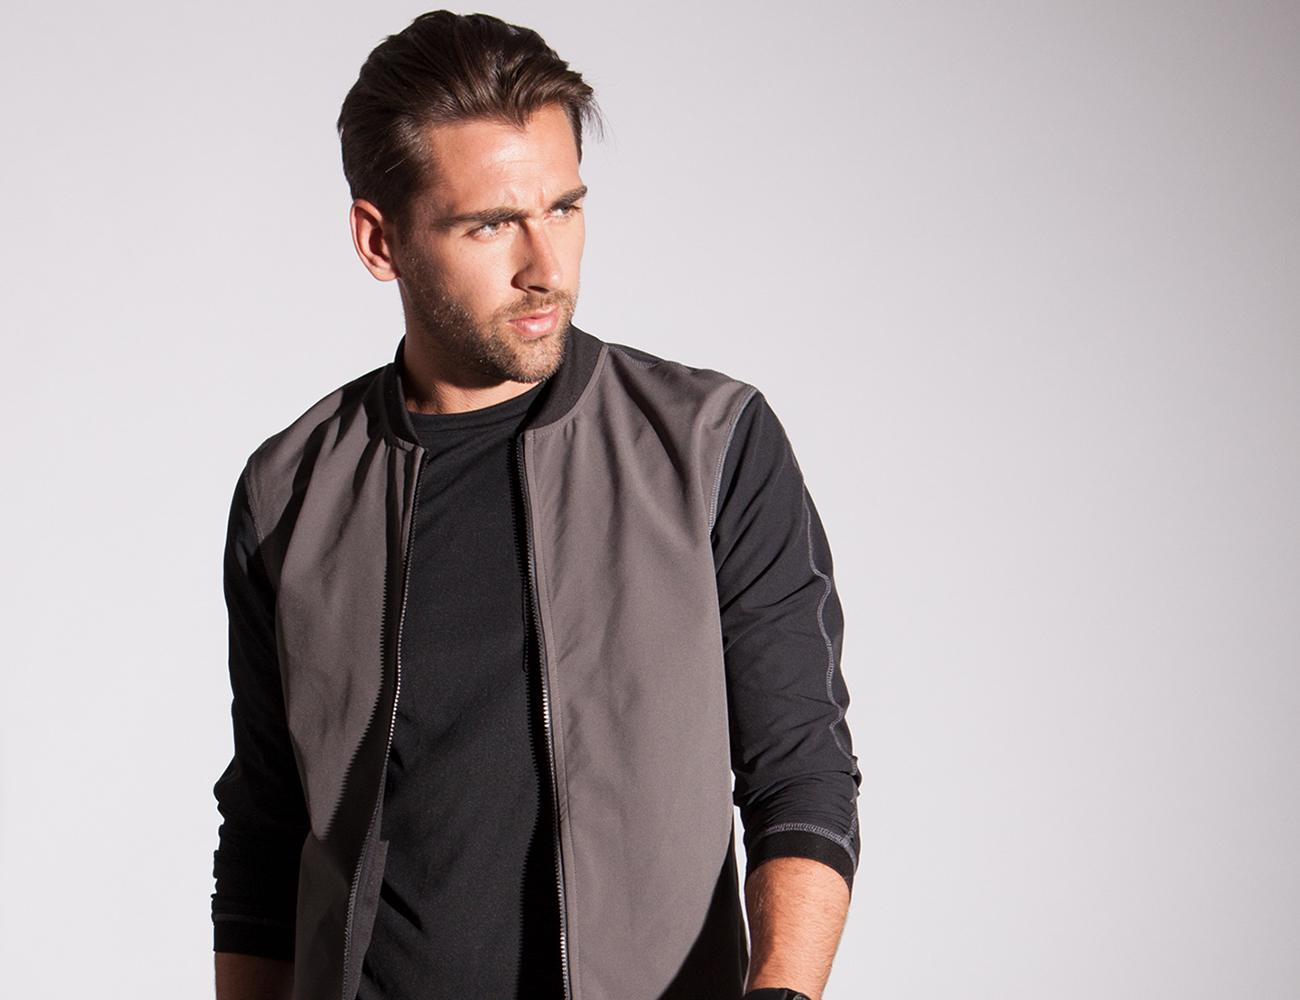 Gastown Jacket – The Most Versatile Jacket You'll Ever Own